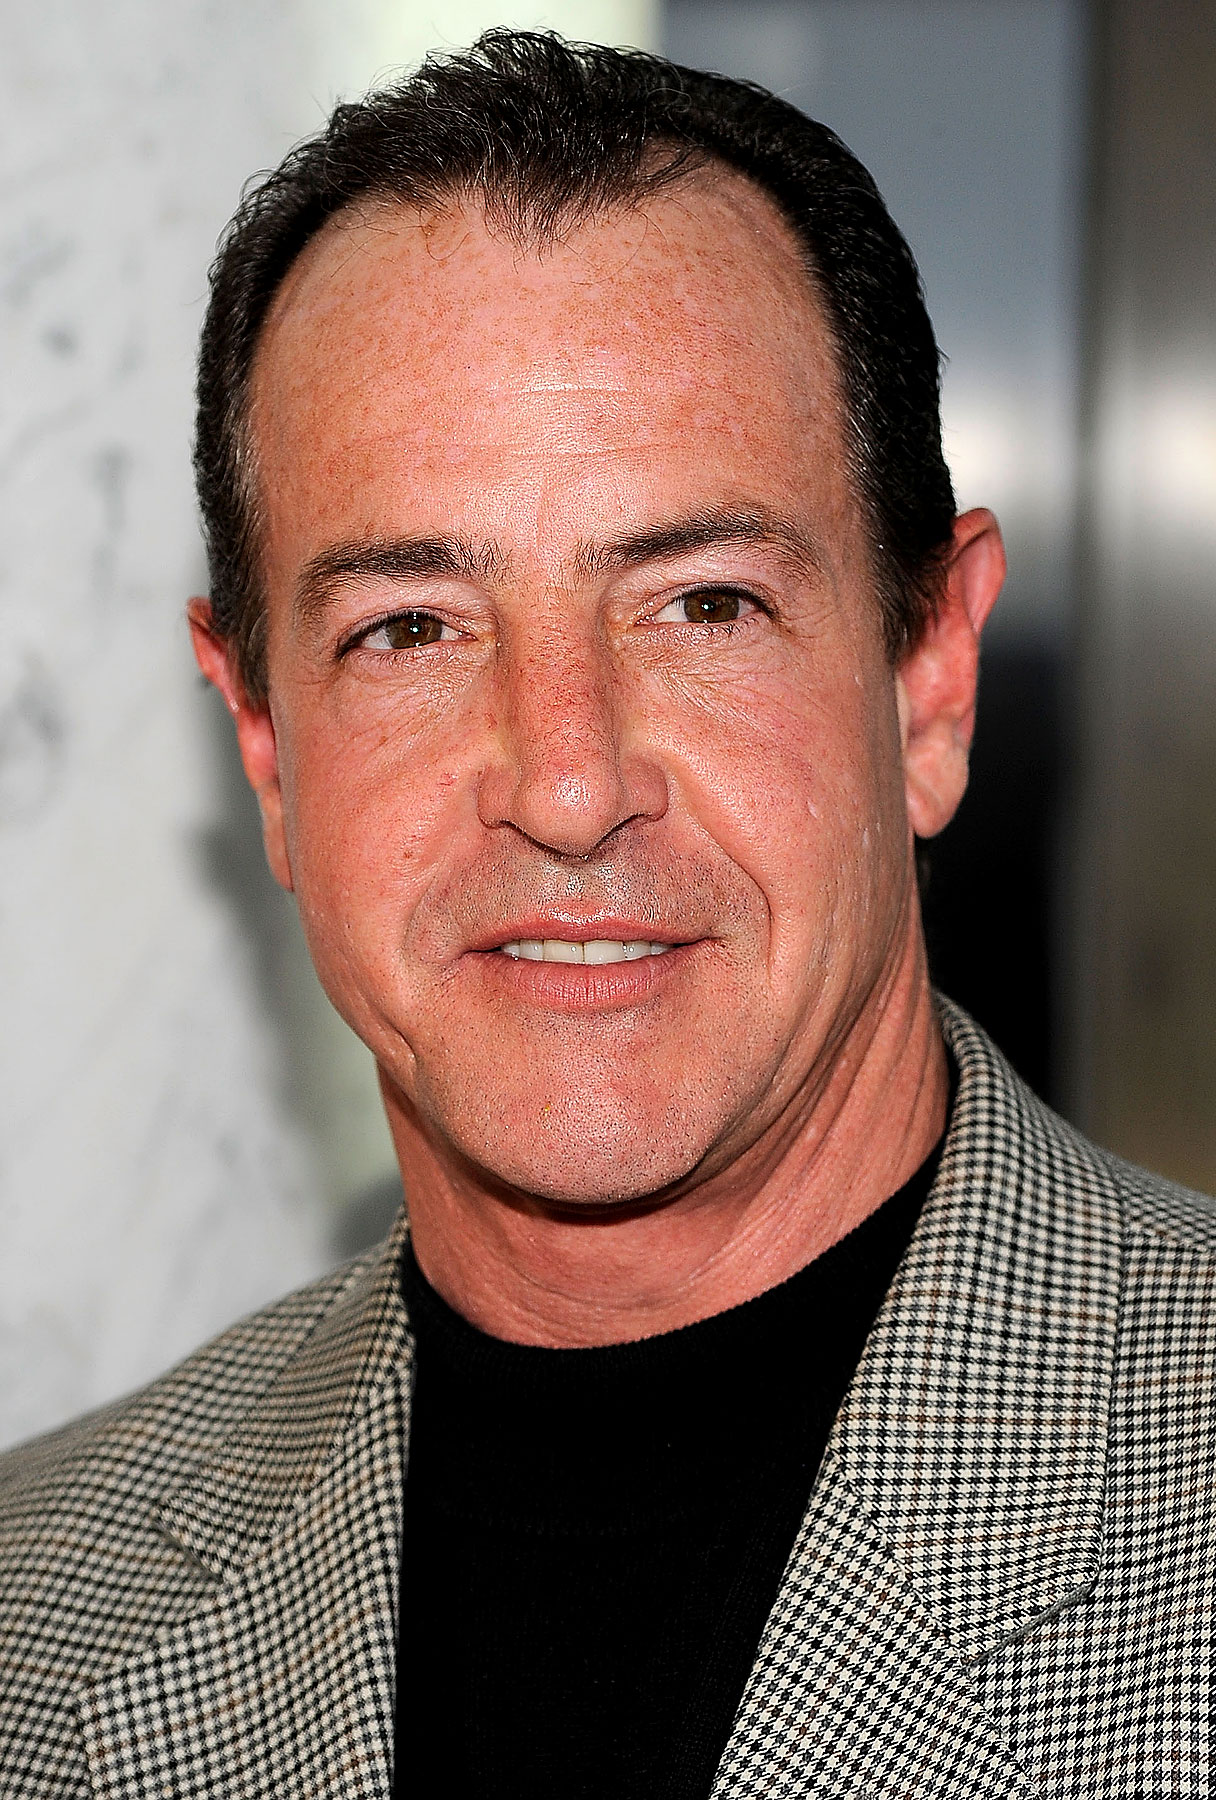 Michael Lohan Leaks Another Phone Call